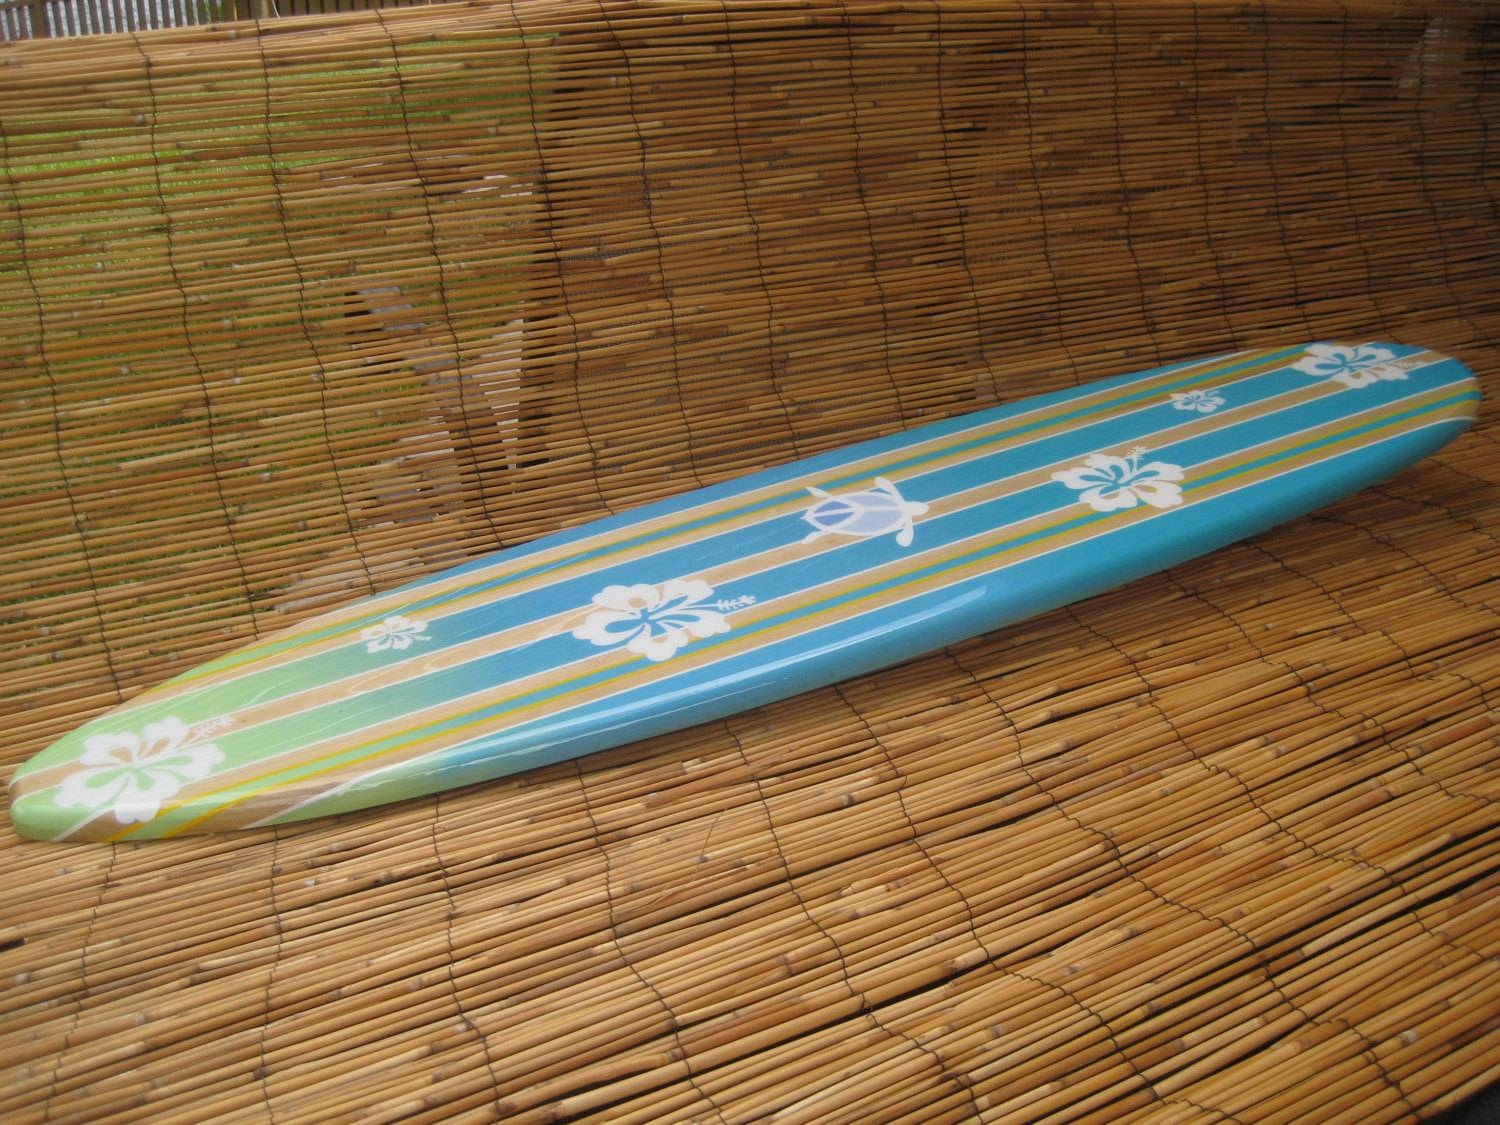 Decorative Wooden Surfboard Wall Art For A Hotel Restaurant With Regard To Best And Newest Decorative Surfboard Wall Art (View 18 of 25)